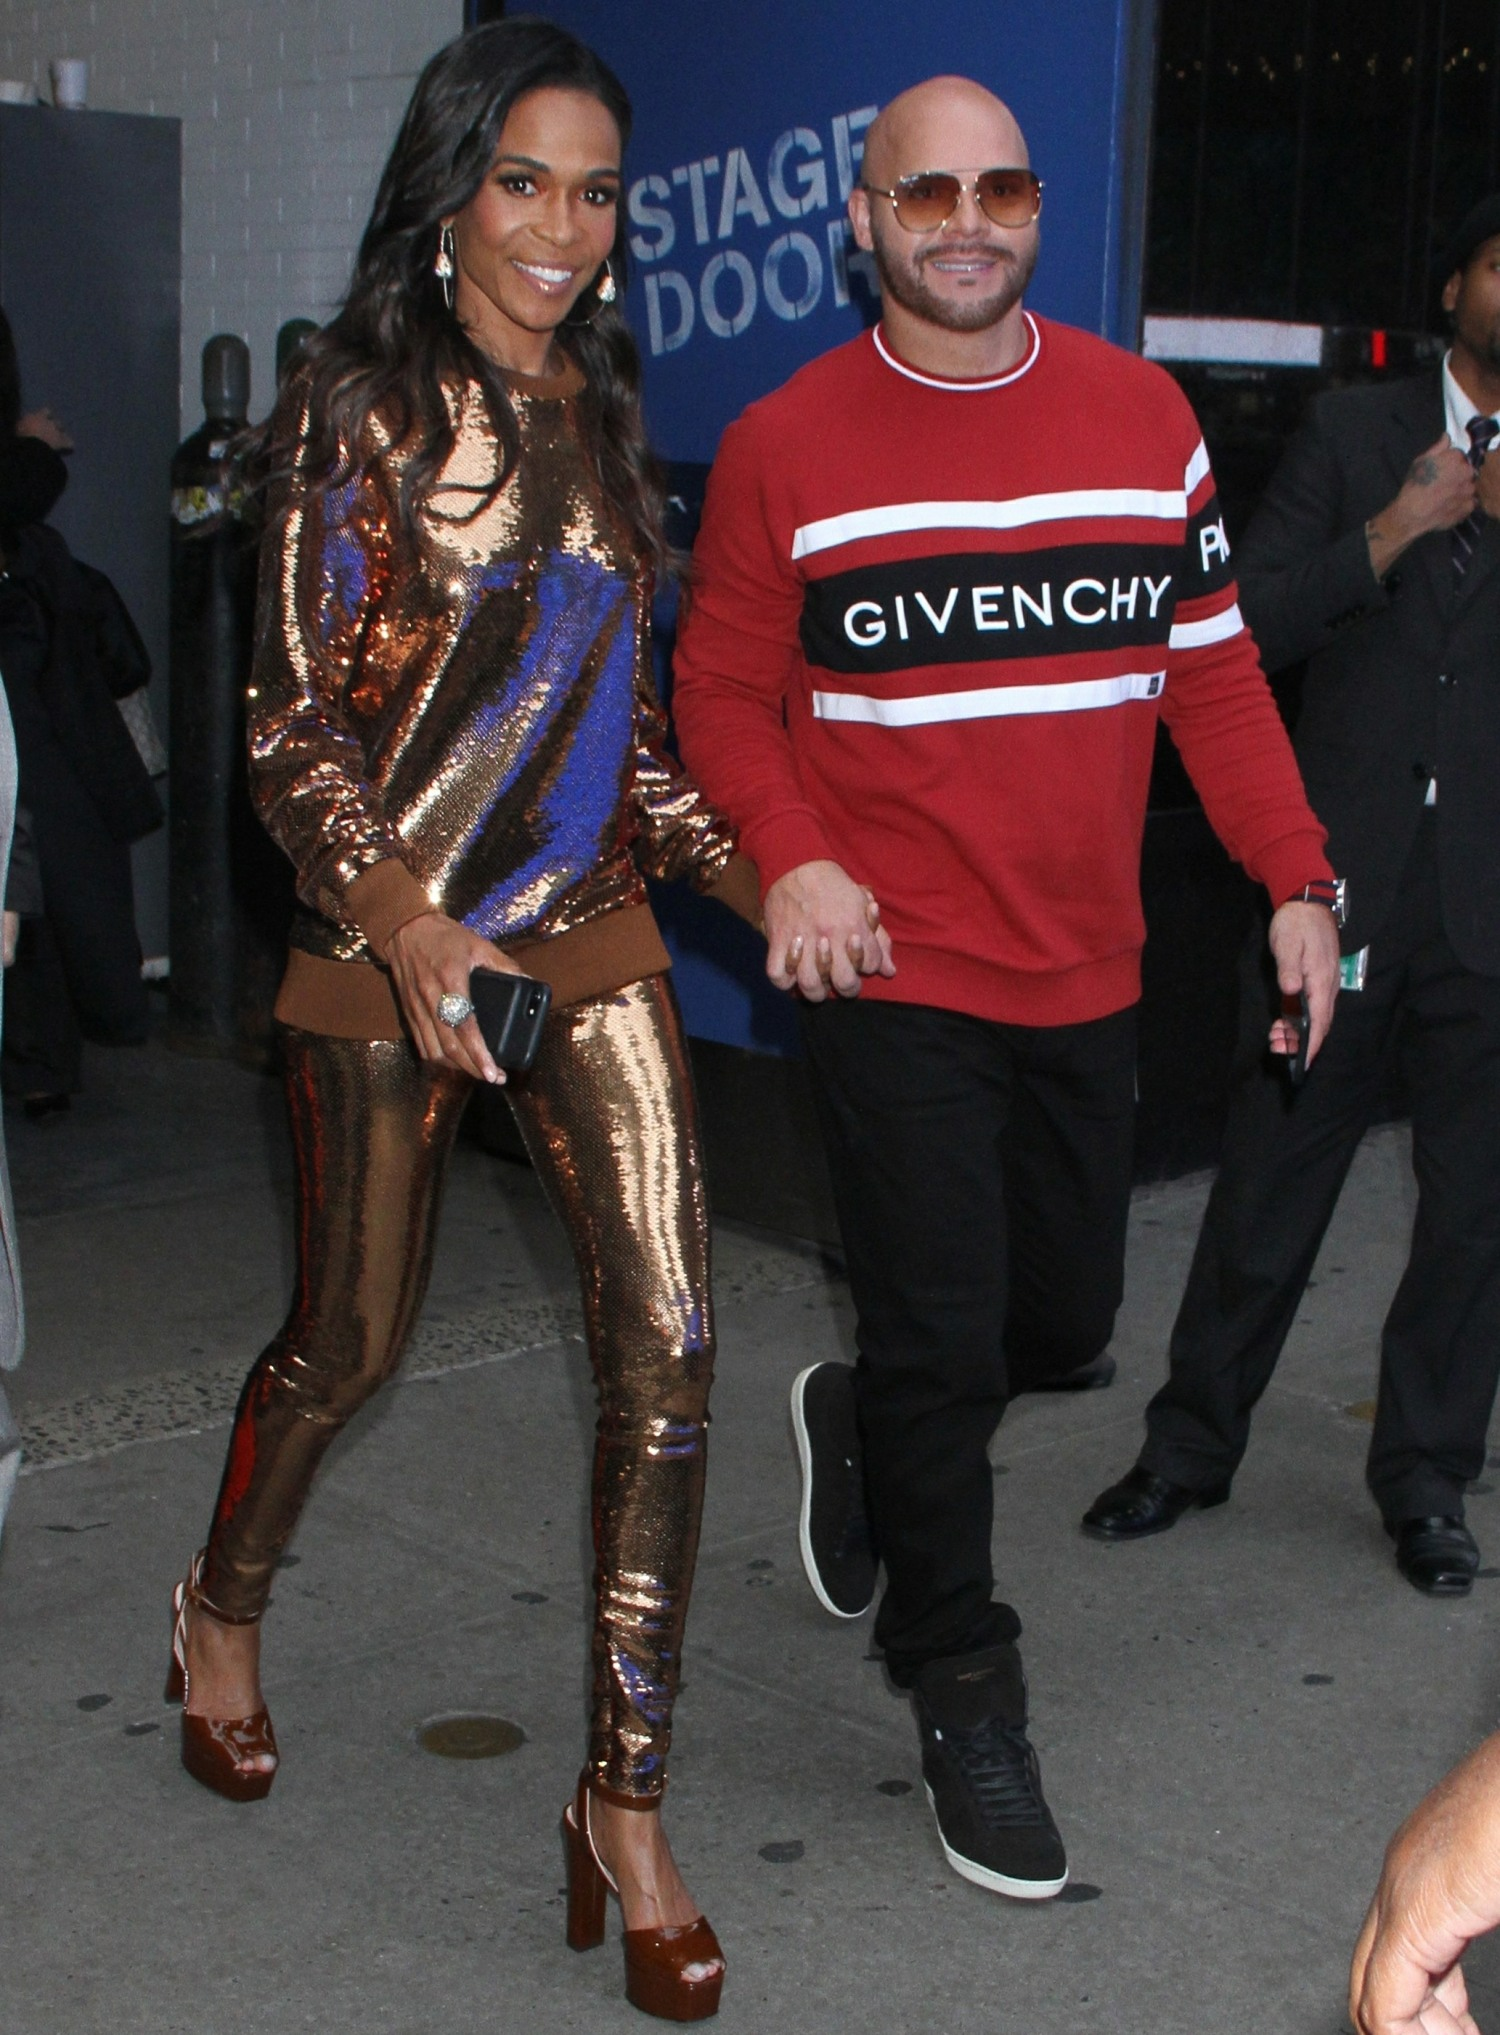 Michelle Williams & Chad Johnson broke off their red-flag-filled engagement